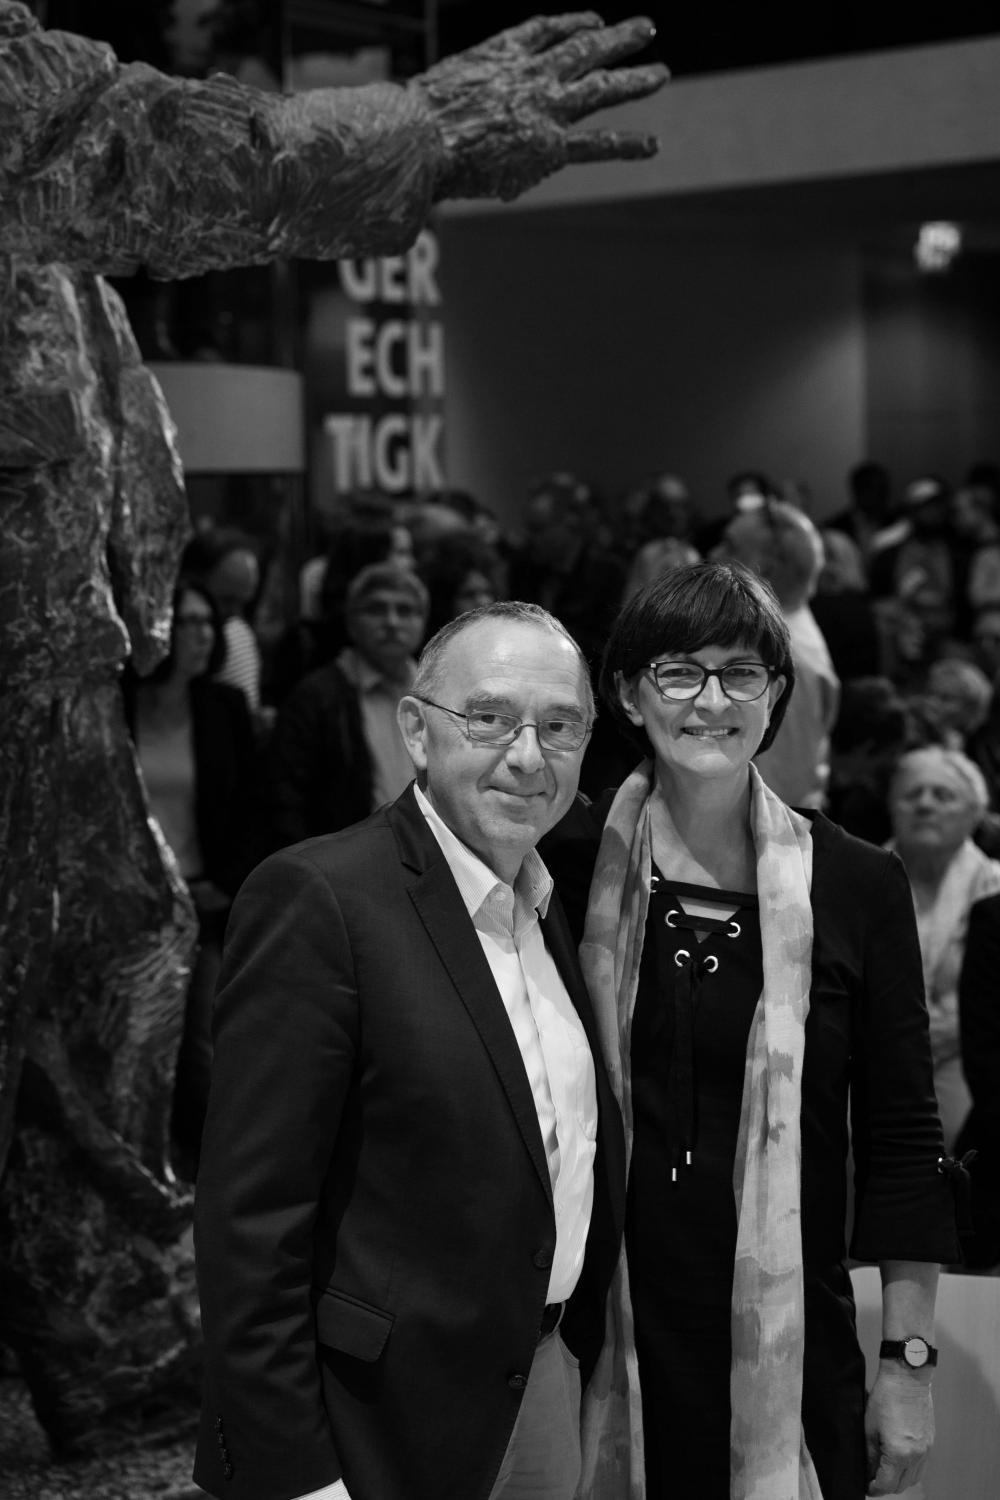 Norbert Walter-Borjans and Saskia Esken stand next to the statue of Willy Brandt at one of the debates for party leadership of the Social Democratic Party of Germany SPD on September 17, 2019 in Berlin. The two left-wingers started as underdogs, but were later elected by the party base and have been leading the party since December 2019.